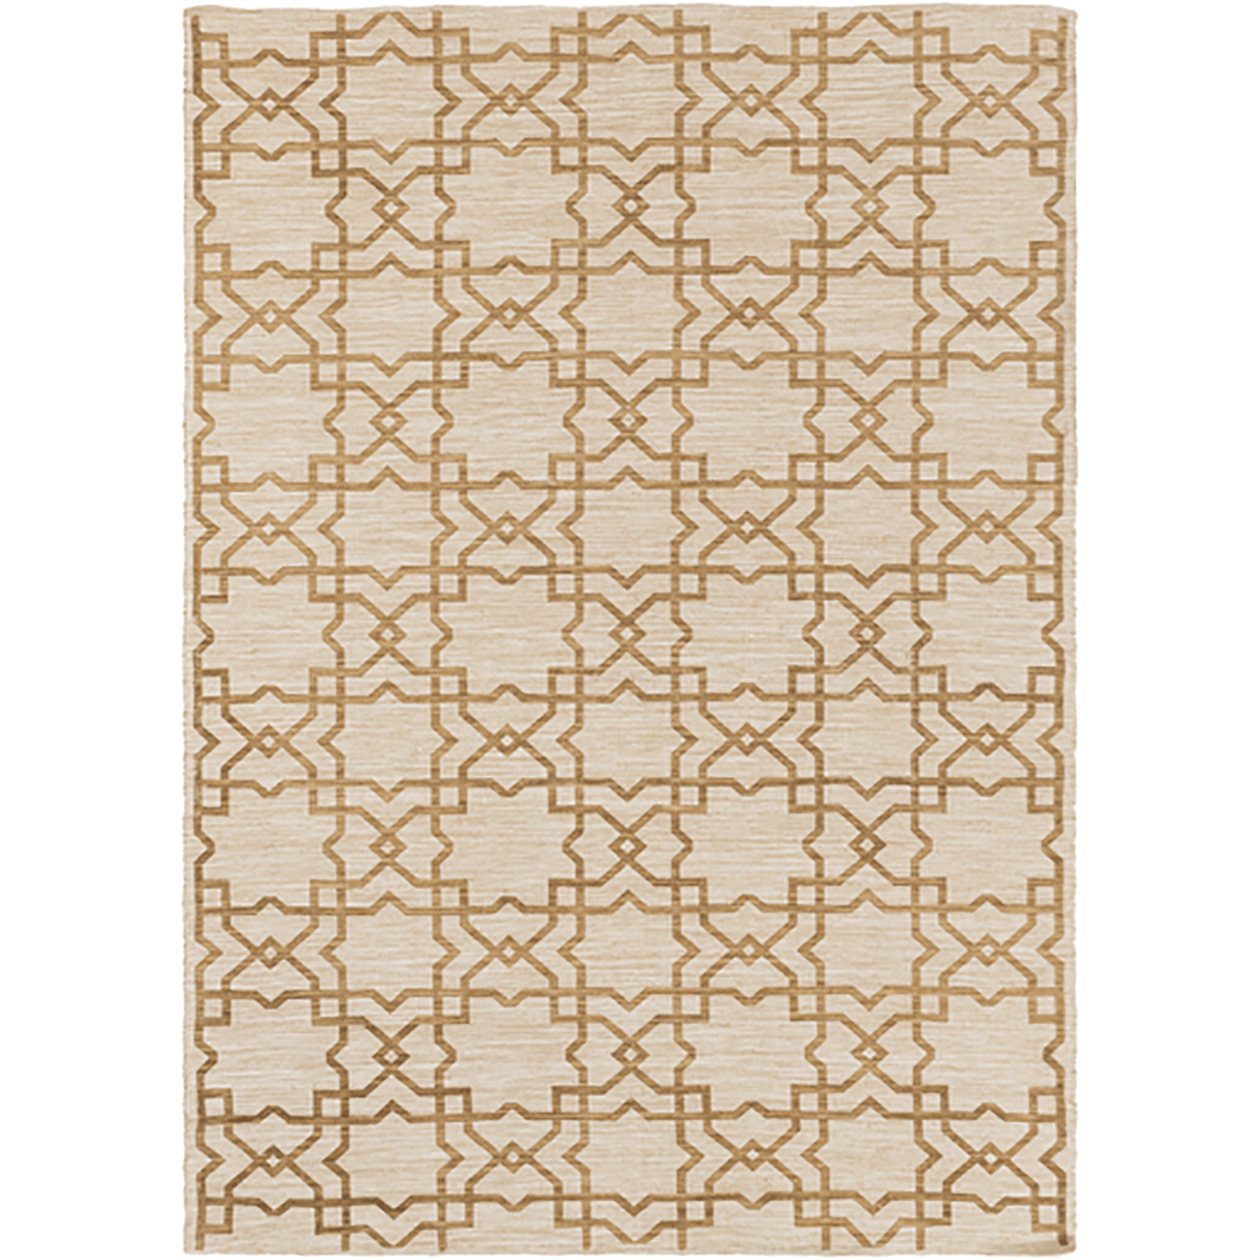 8x10 Gold Flat Weave Rug